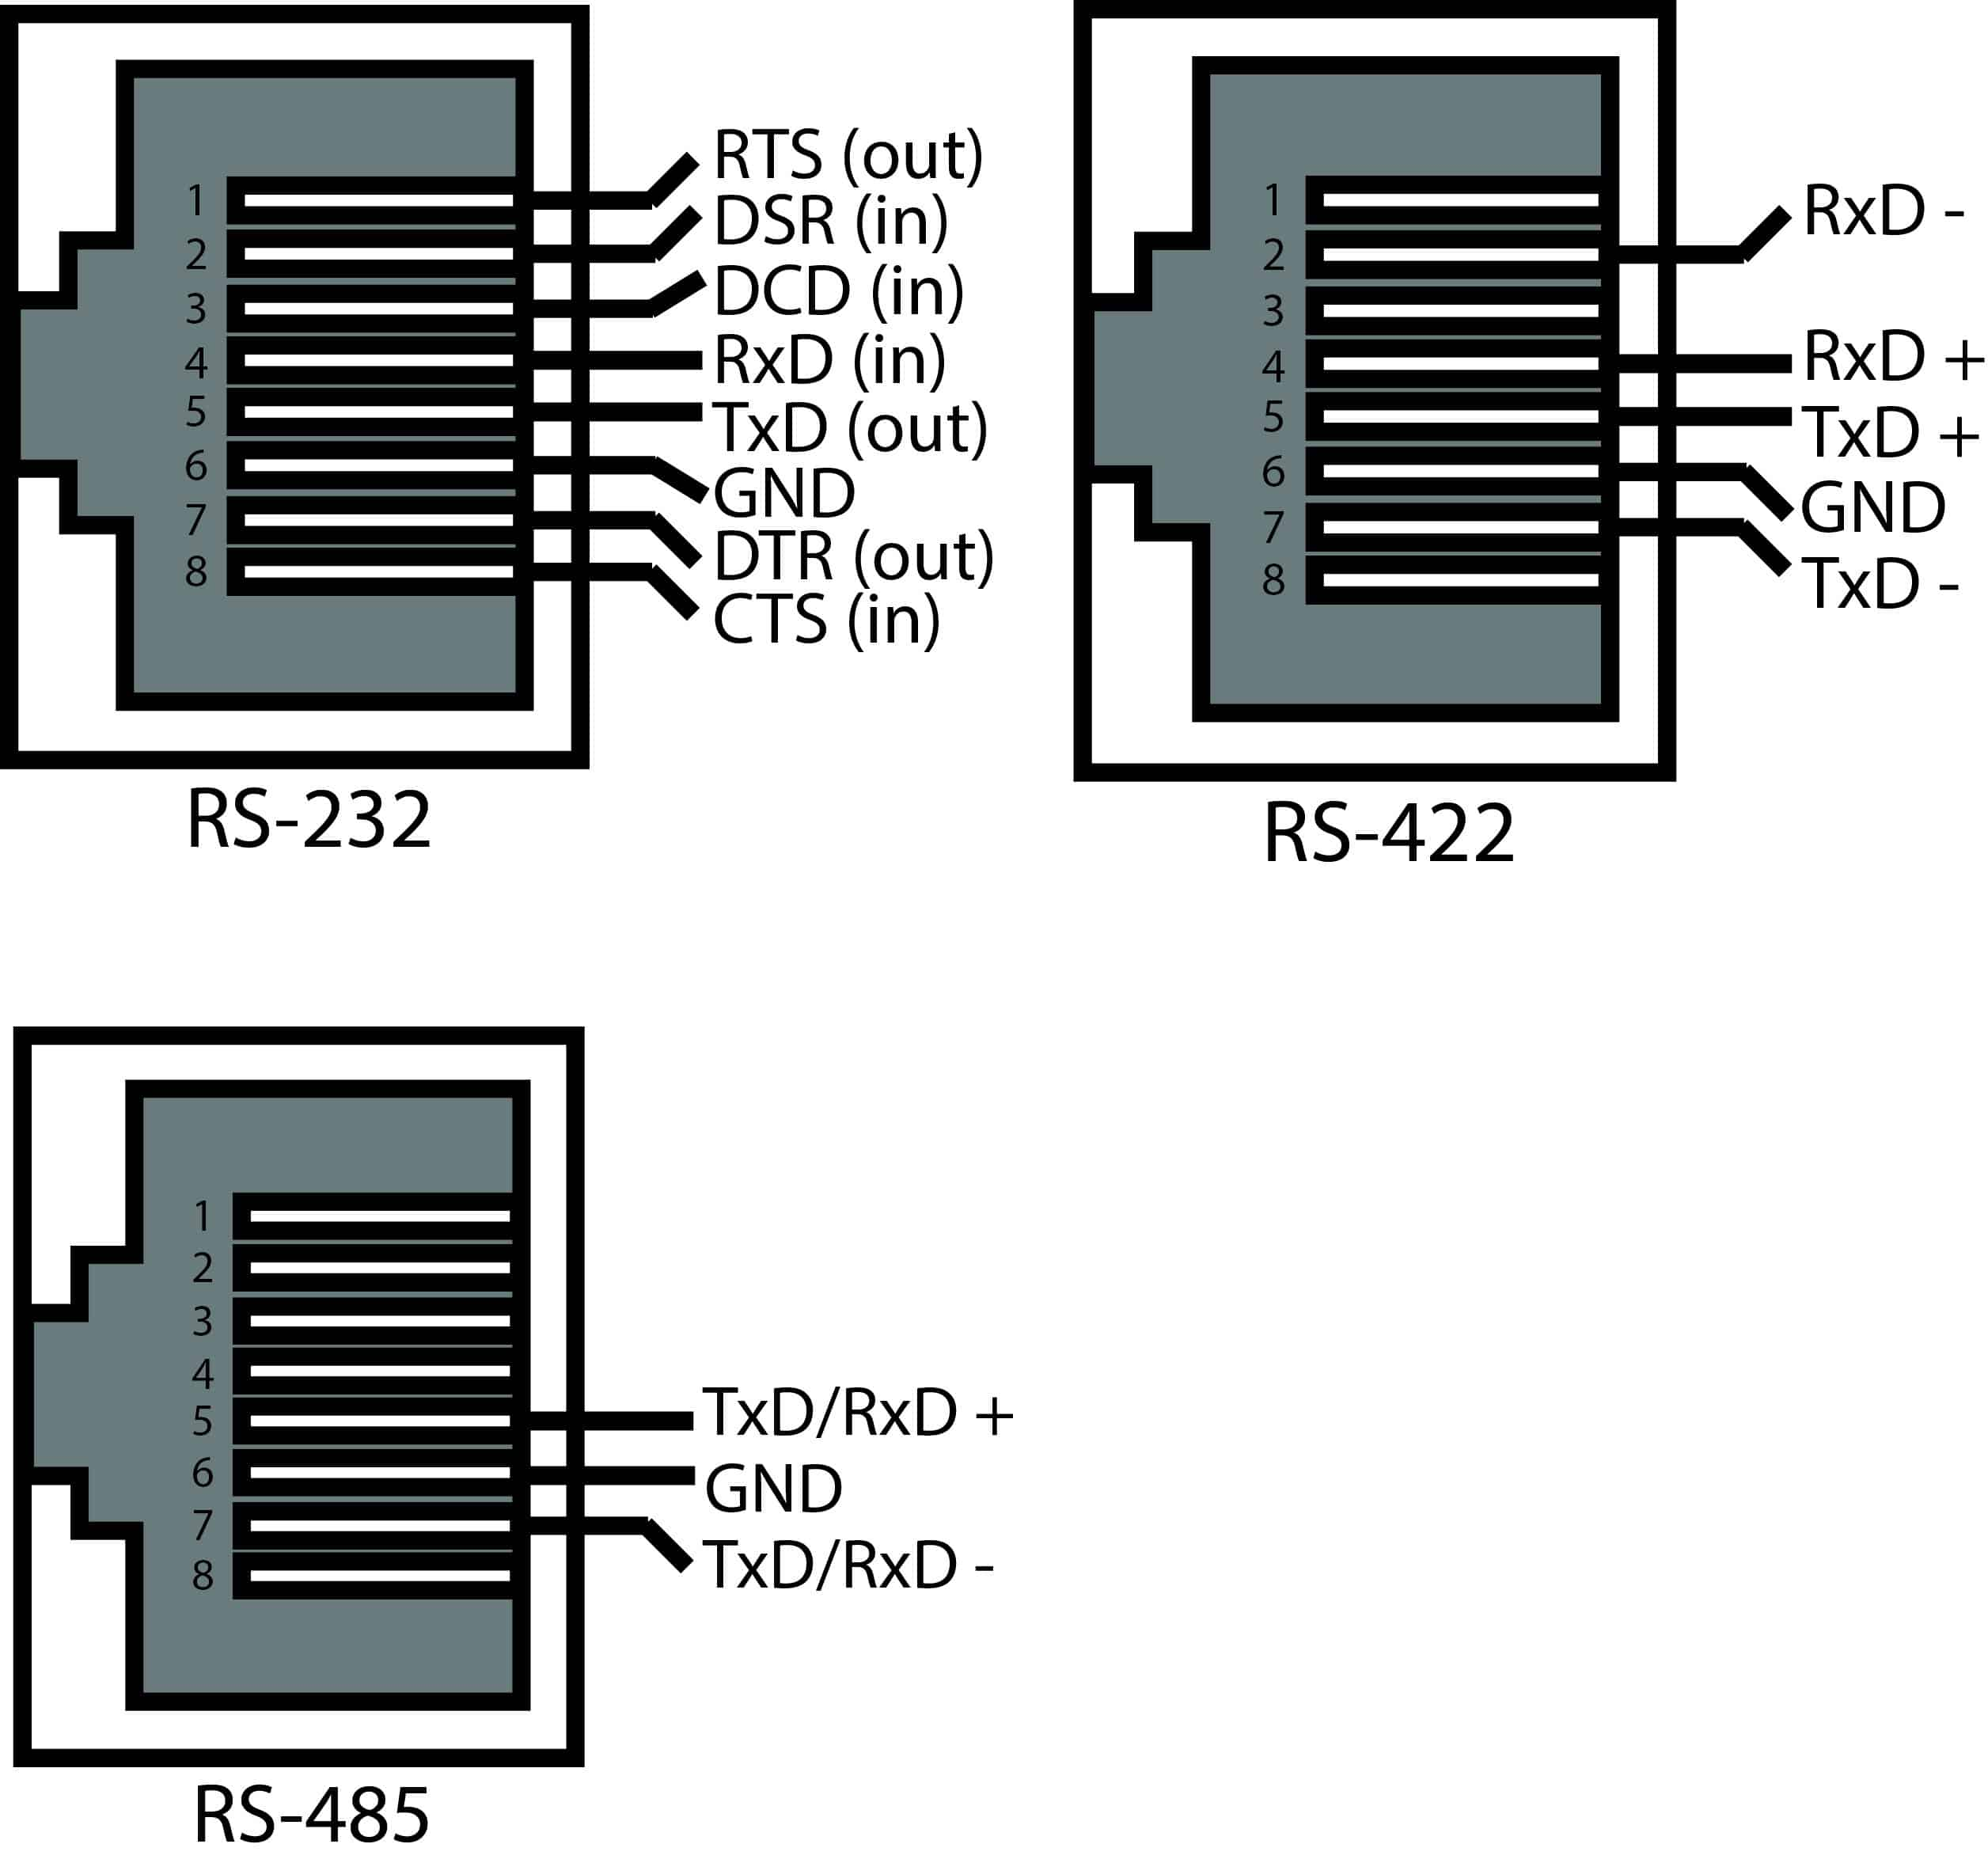 rj45 to rj11 adapter wiring diagram john deere 2440 alternator comtrol devicemaster up 16 modbus